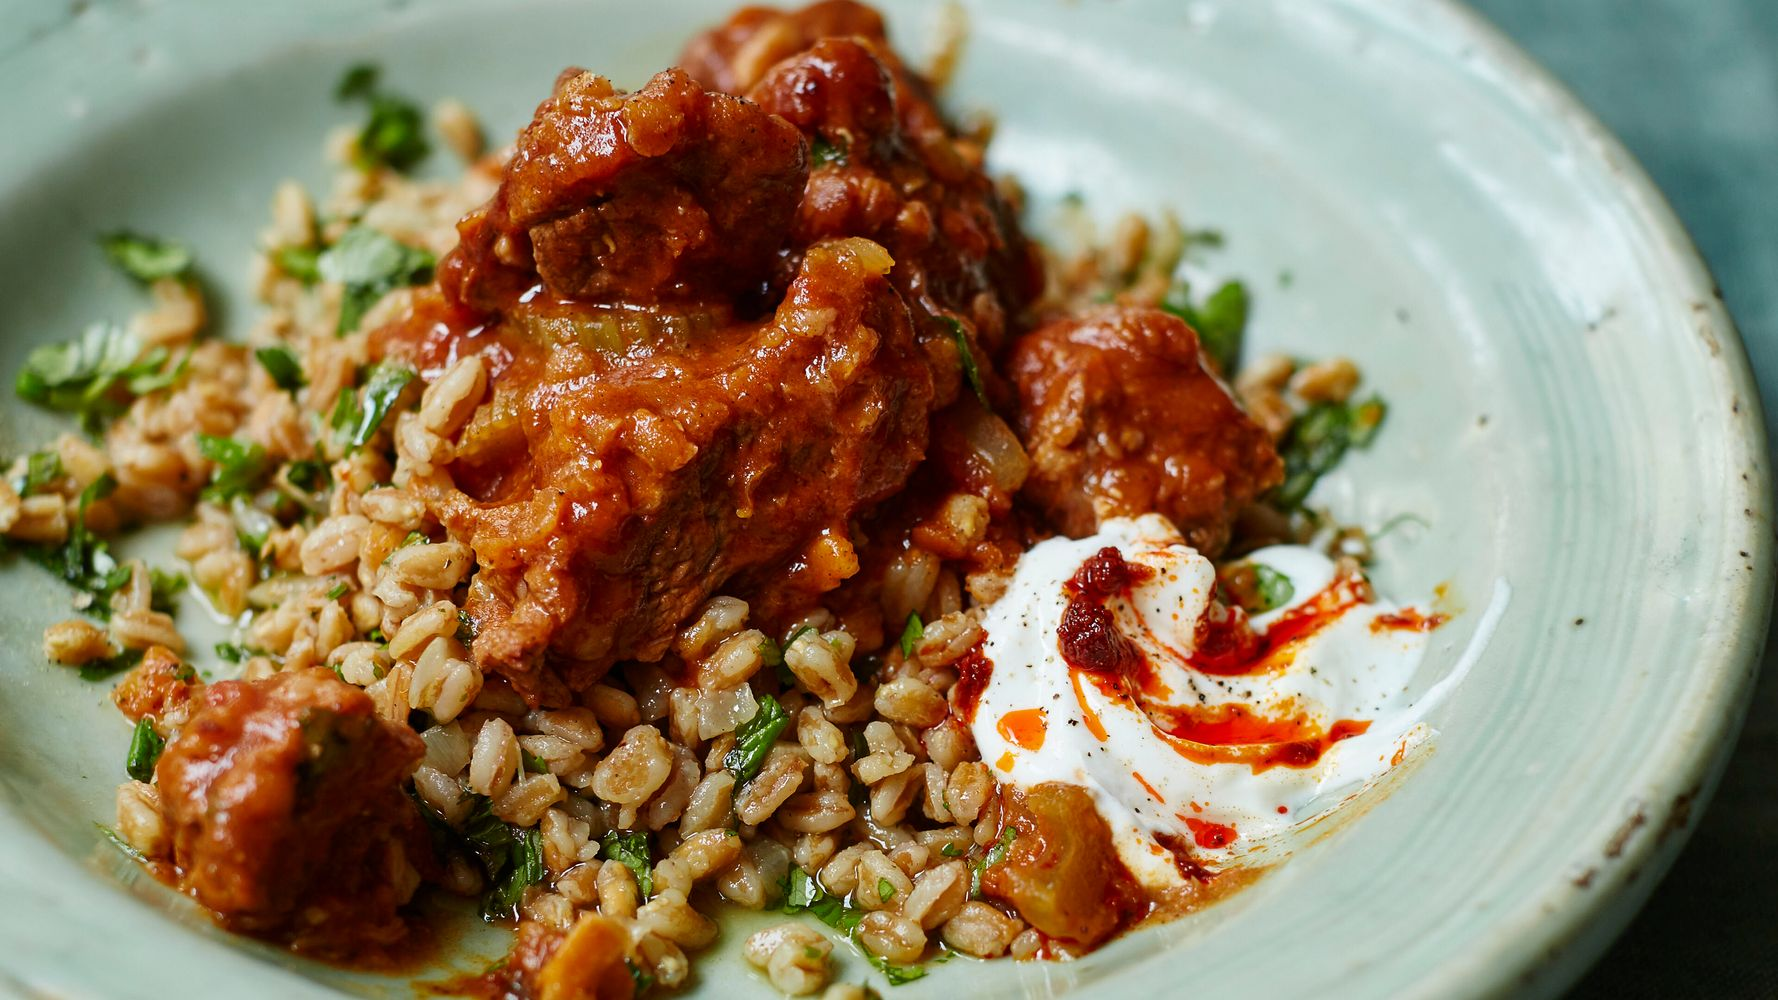 Prepare This Toddler-Friendly Lamb, Red Lentil and Date Tagine Recipe For a Family Feast